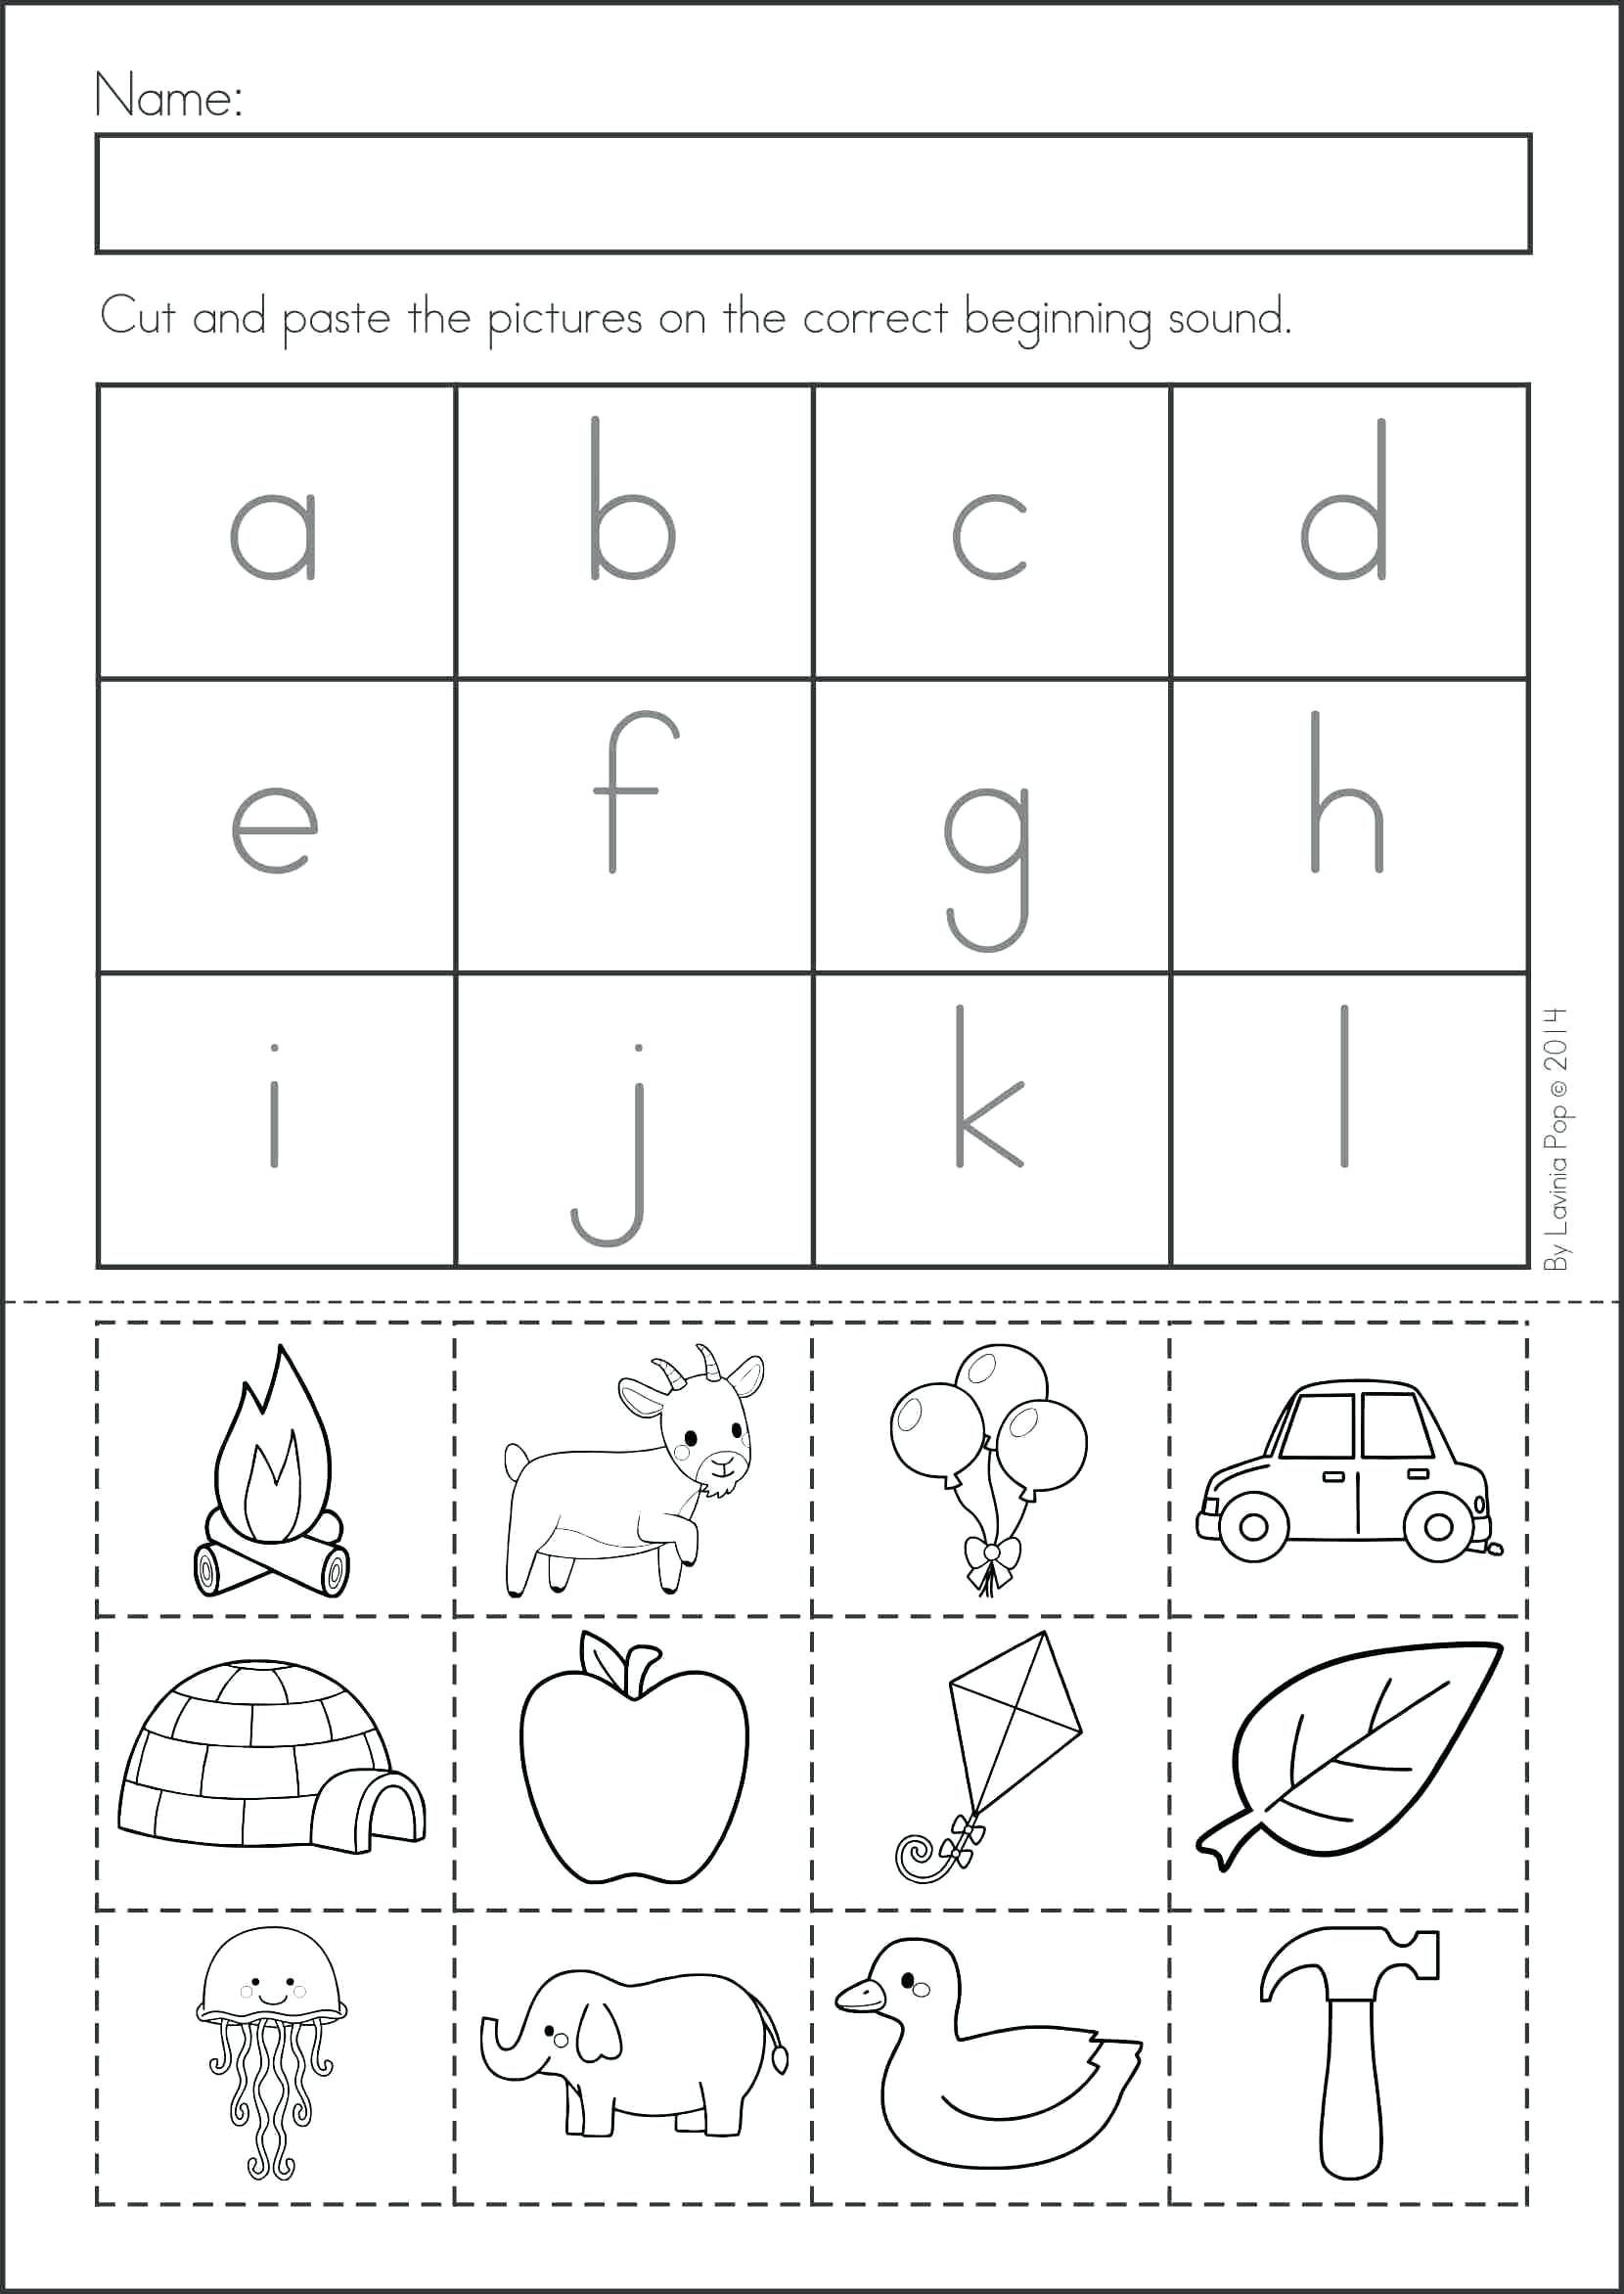 Cut and Paste Math Worksheets Free Worksheets for Kindergarten Cut and Paste